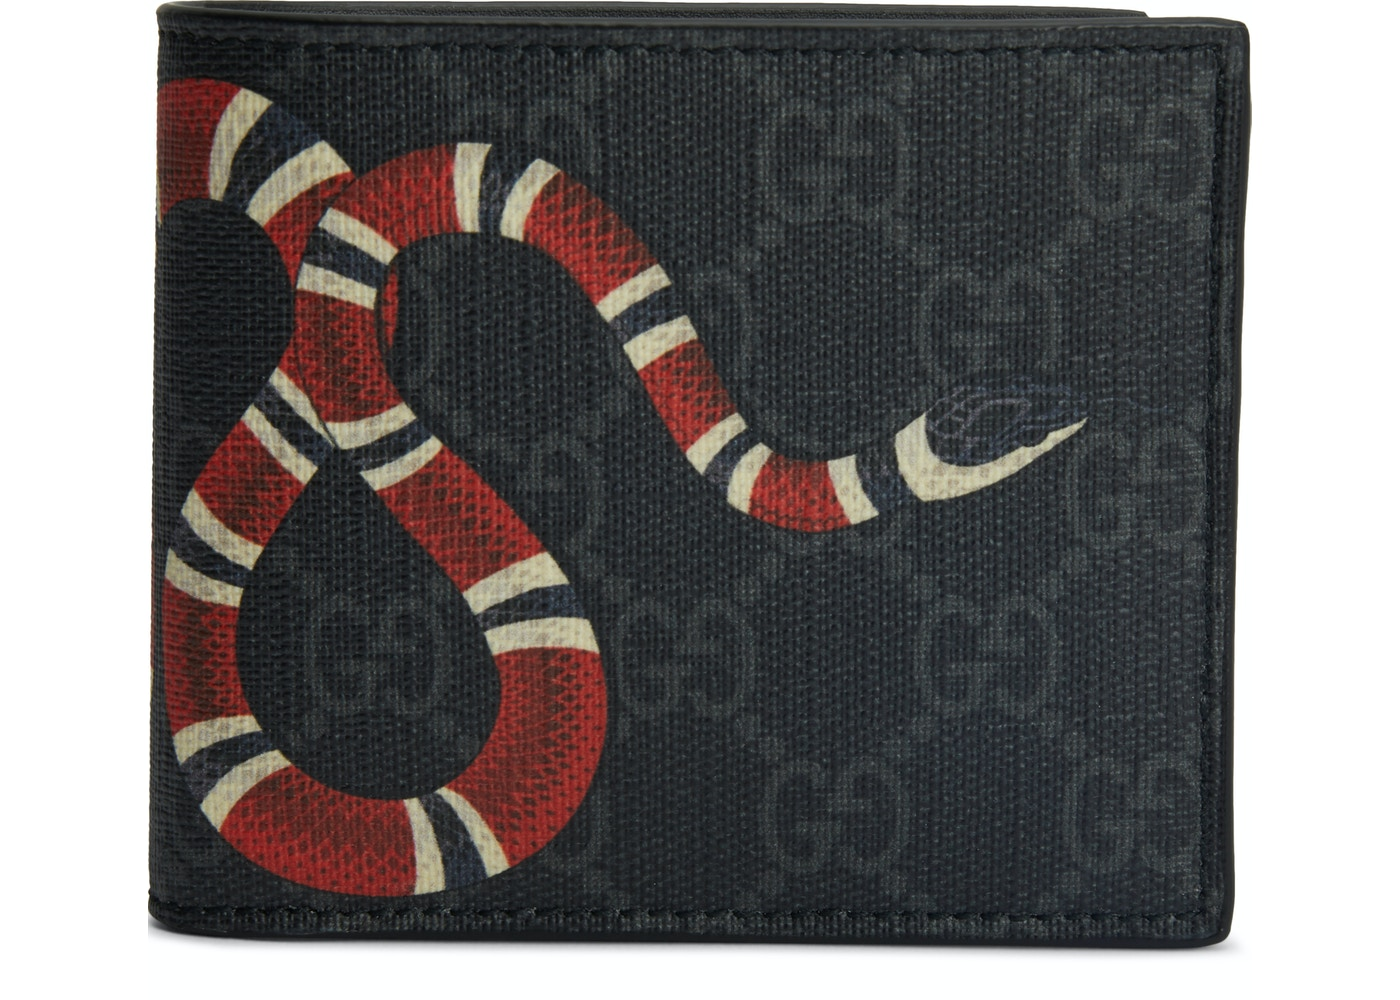 3a05d93d0afb Gucci Kingsnake Wallet GG Supreme (8 Card Slots) Black. GG Supreme (8 Card  Slots) Black